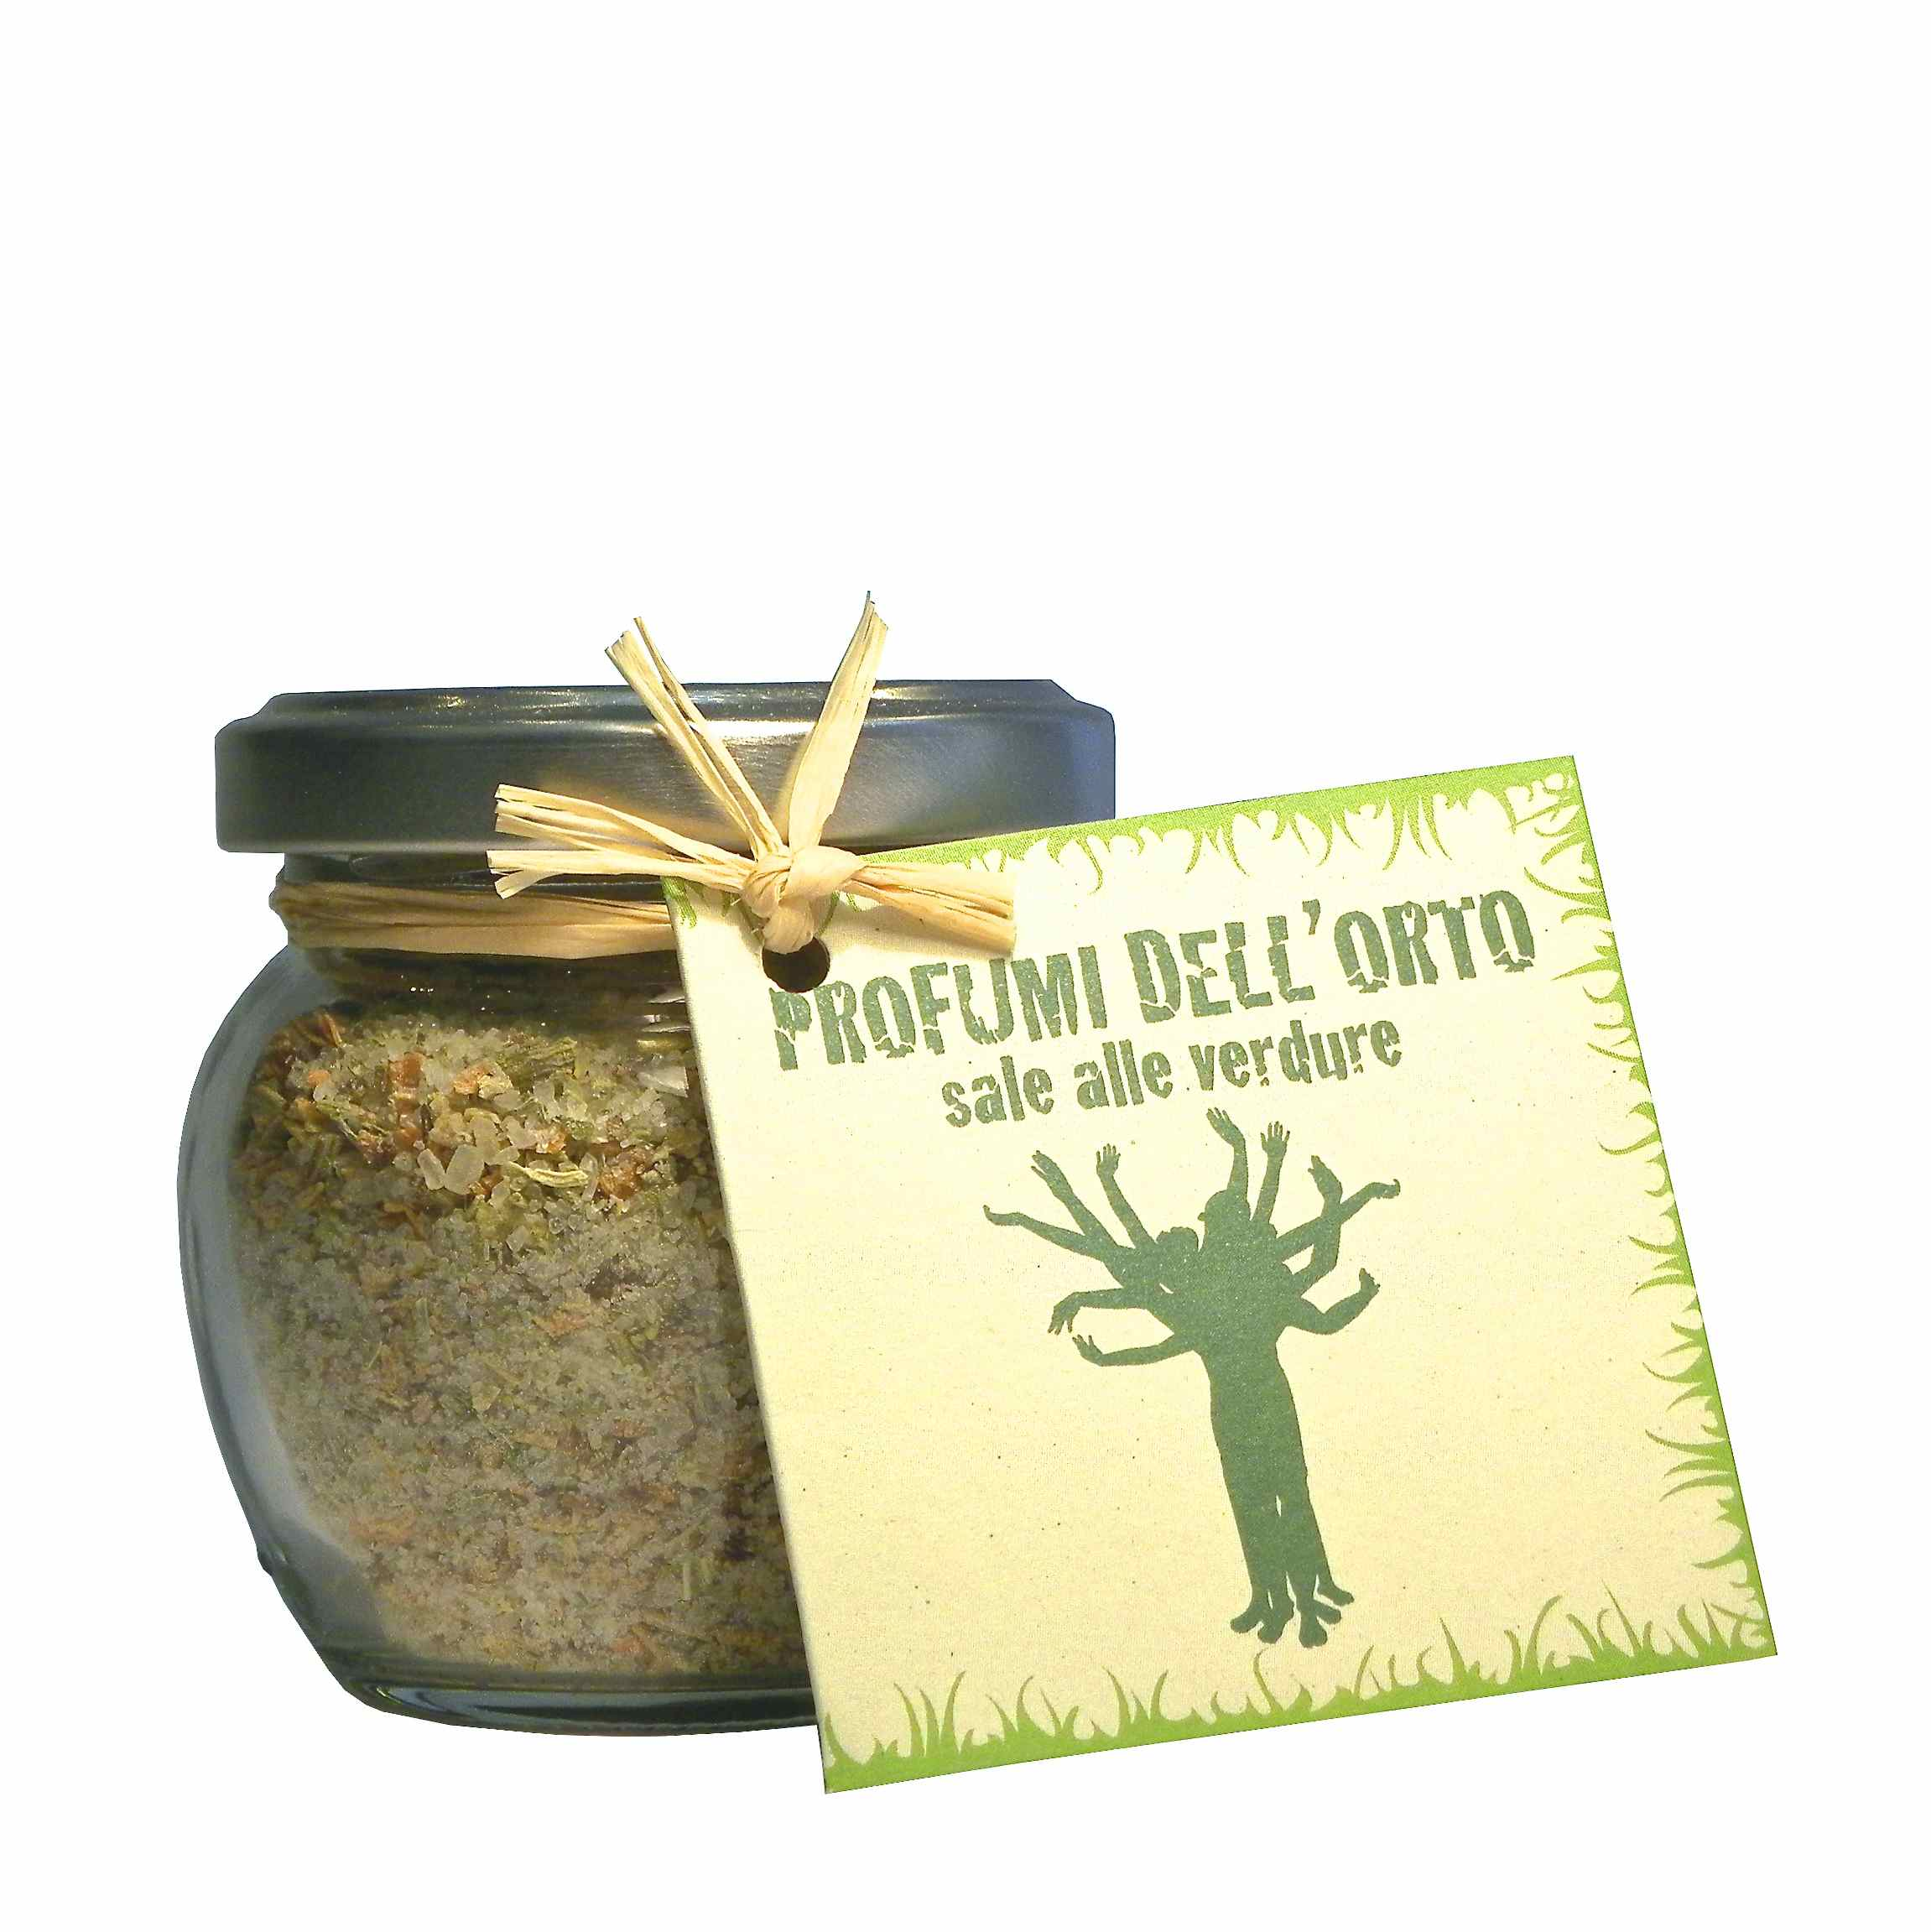 Oasi 2000 Arcipelago Sale alle verdure – Oasi 2000 Arcipelago Salt and vegetables – Gustorotondo – Italian food boutique